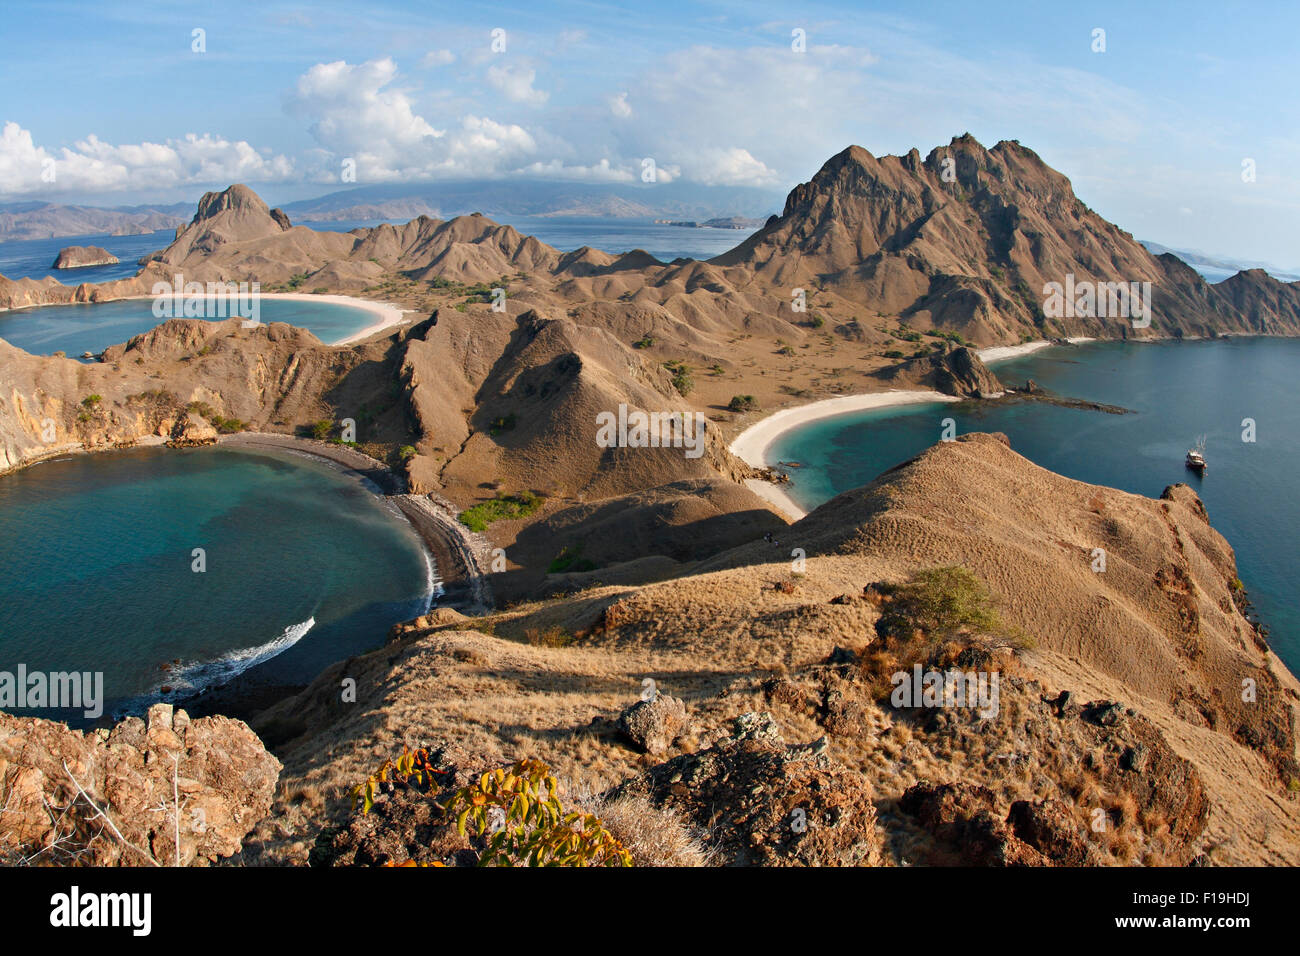 """px91466-D. amazing view from atop Padar Island, Komodo National Park. Dive boat """"Seven Seas"""" in bay. Indonesia, Stock Photo"""